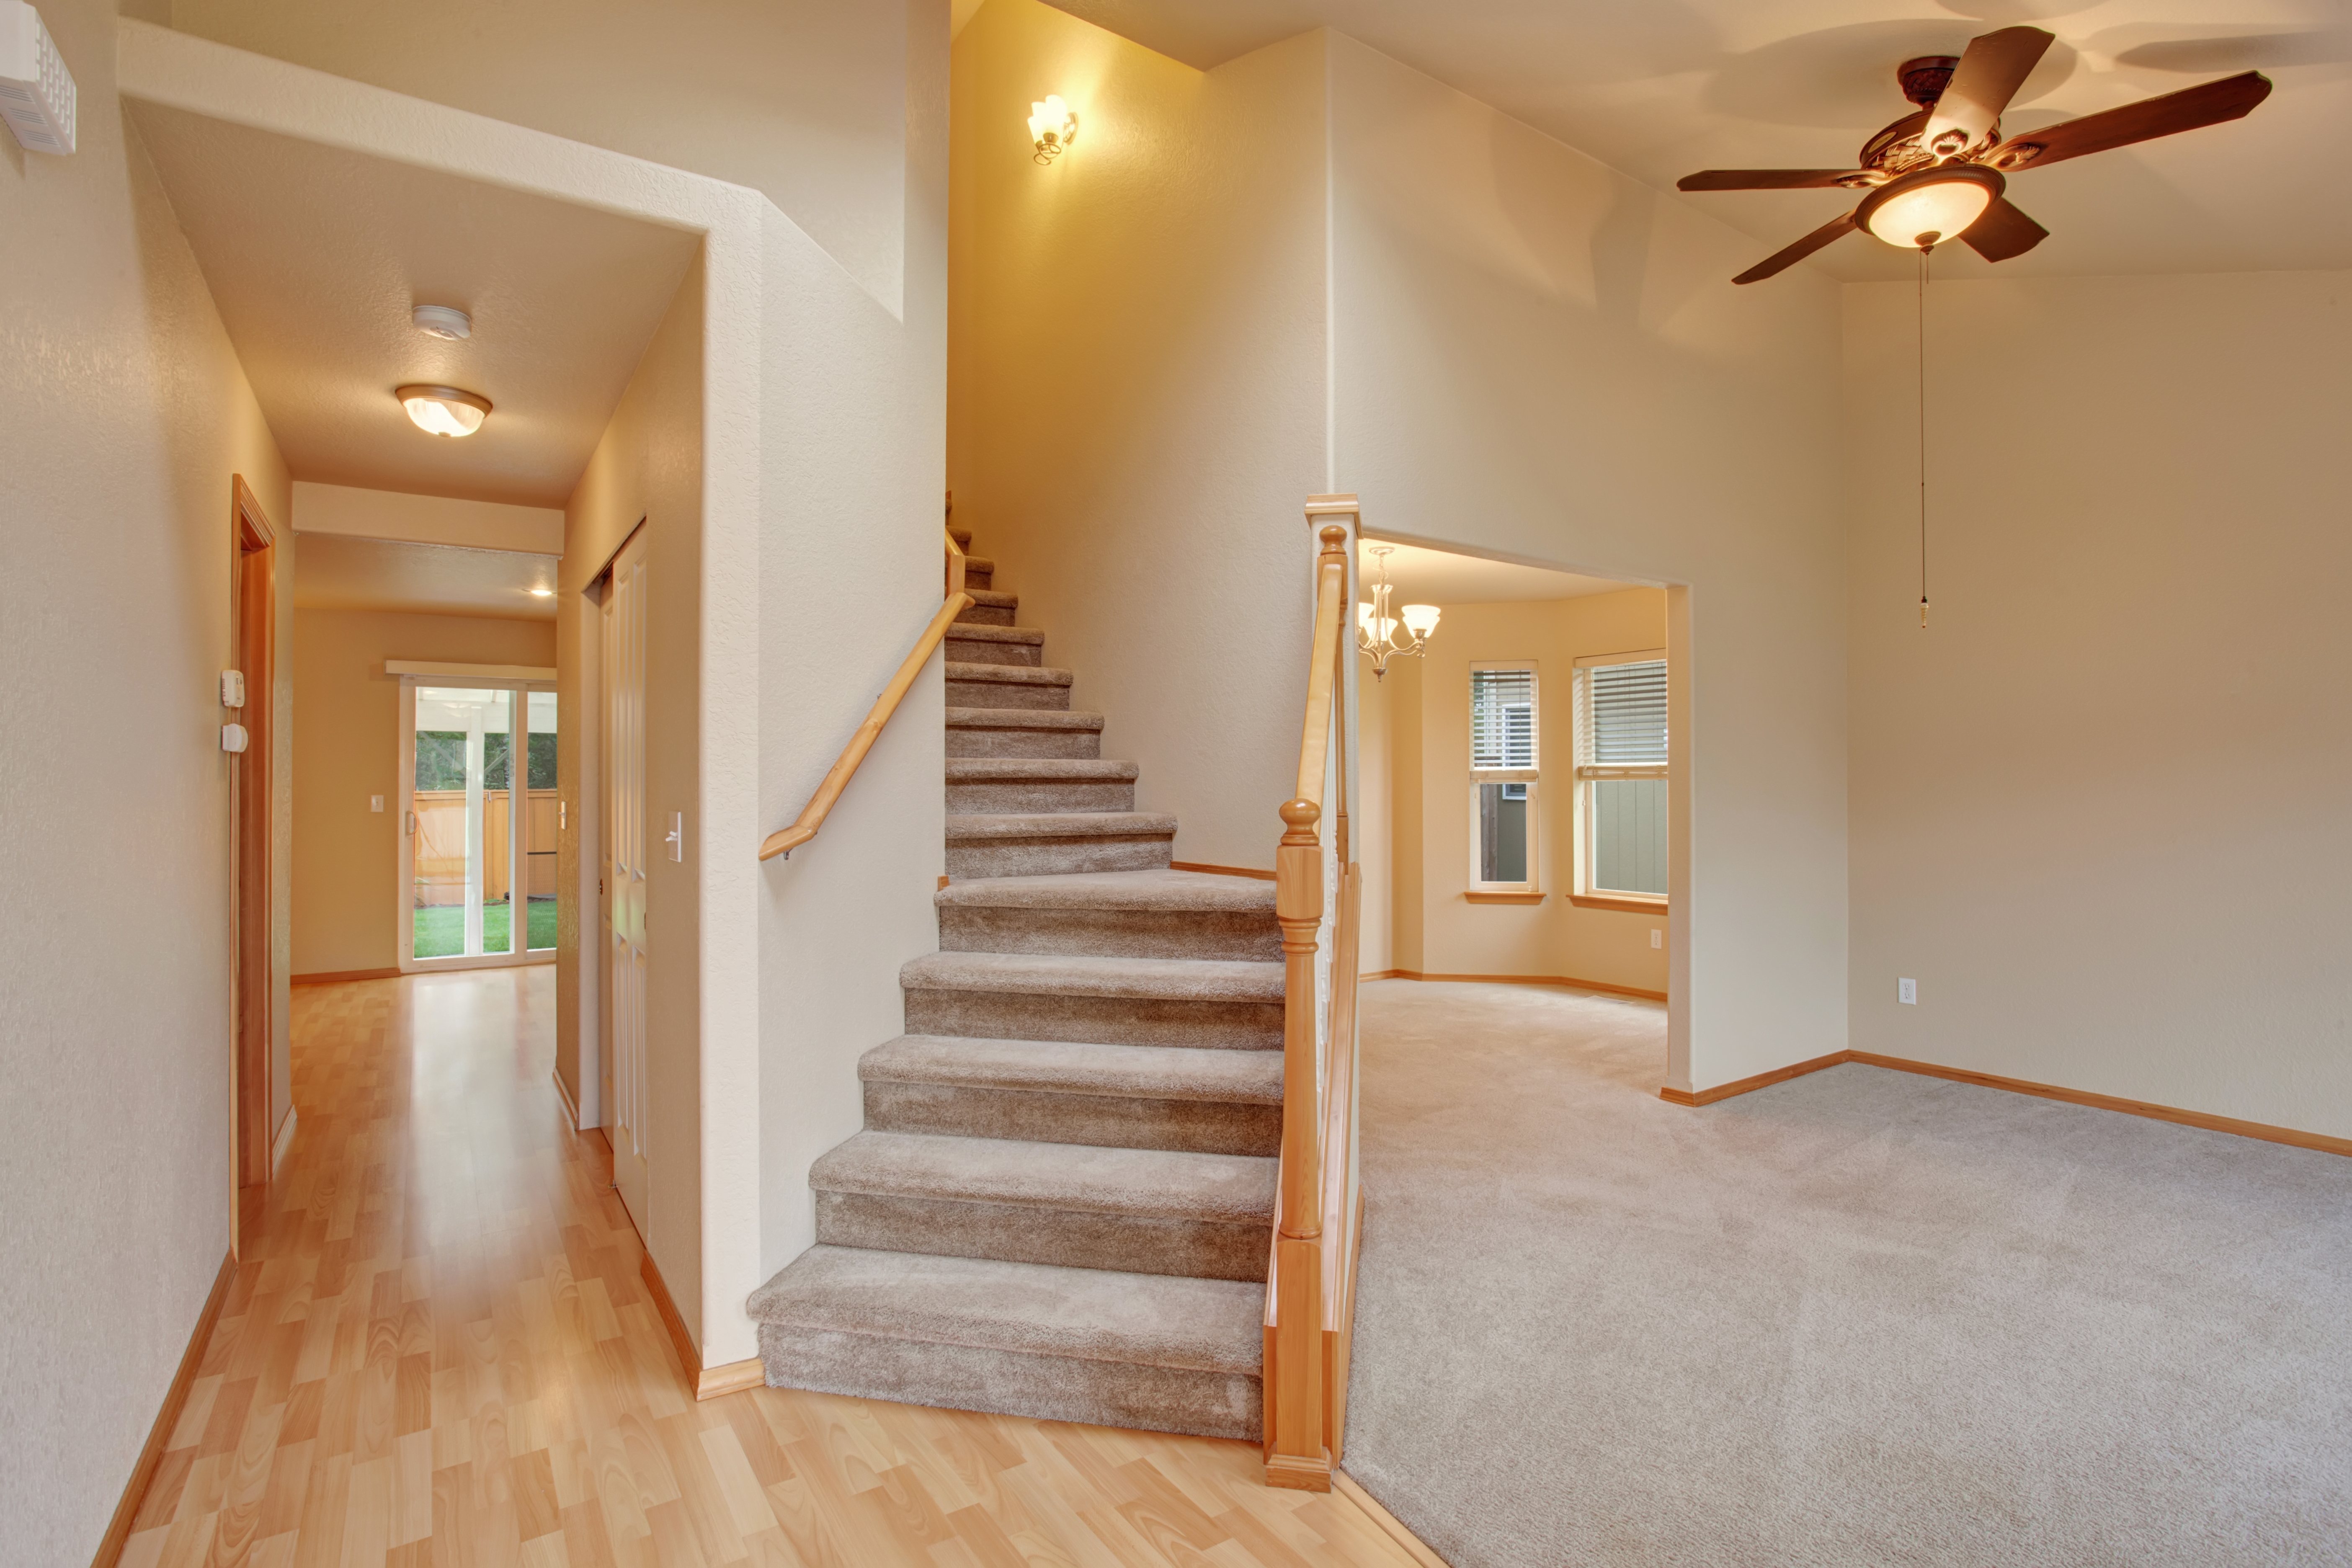 How To Lay Carpet On Stairs And The Landing Builddirectlearning | Running Carpet For Stairs | Stair Tread | Hardwood | Wood | Grey | Stair Runners